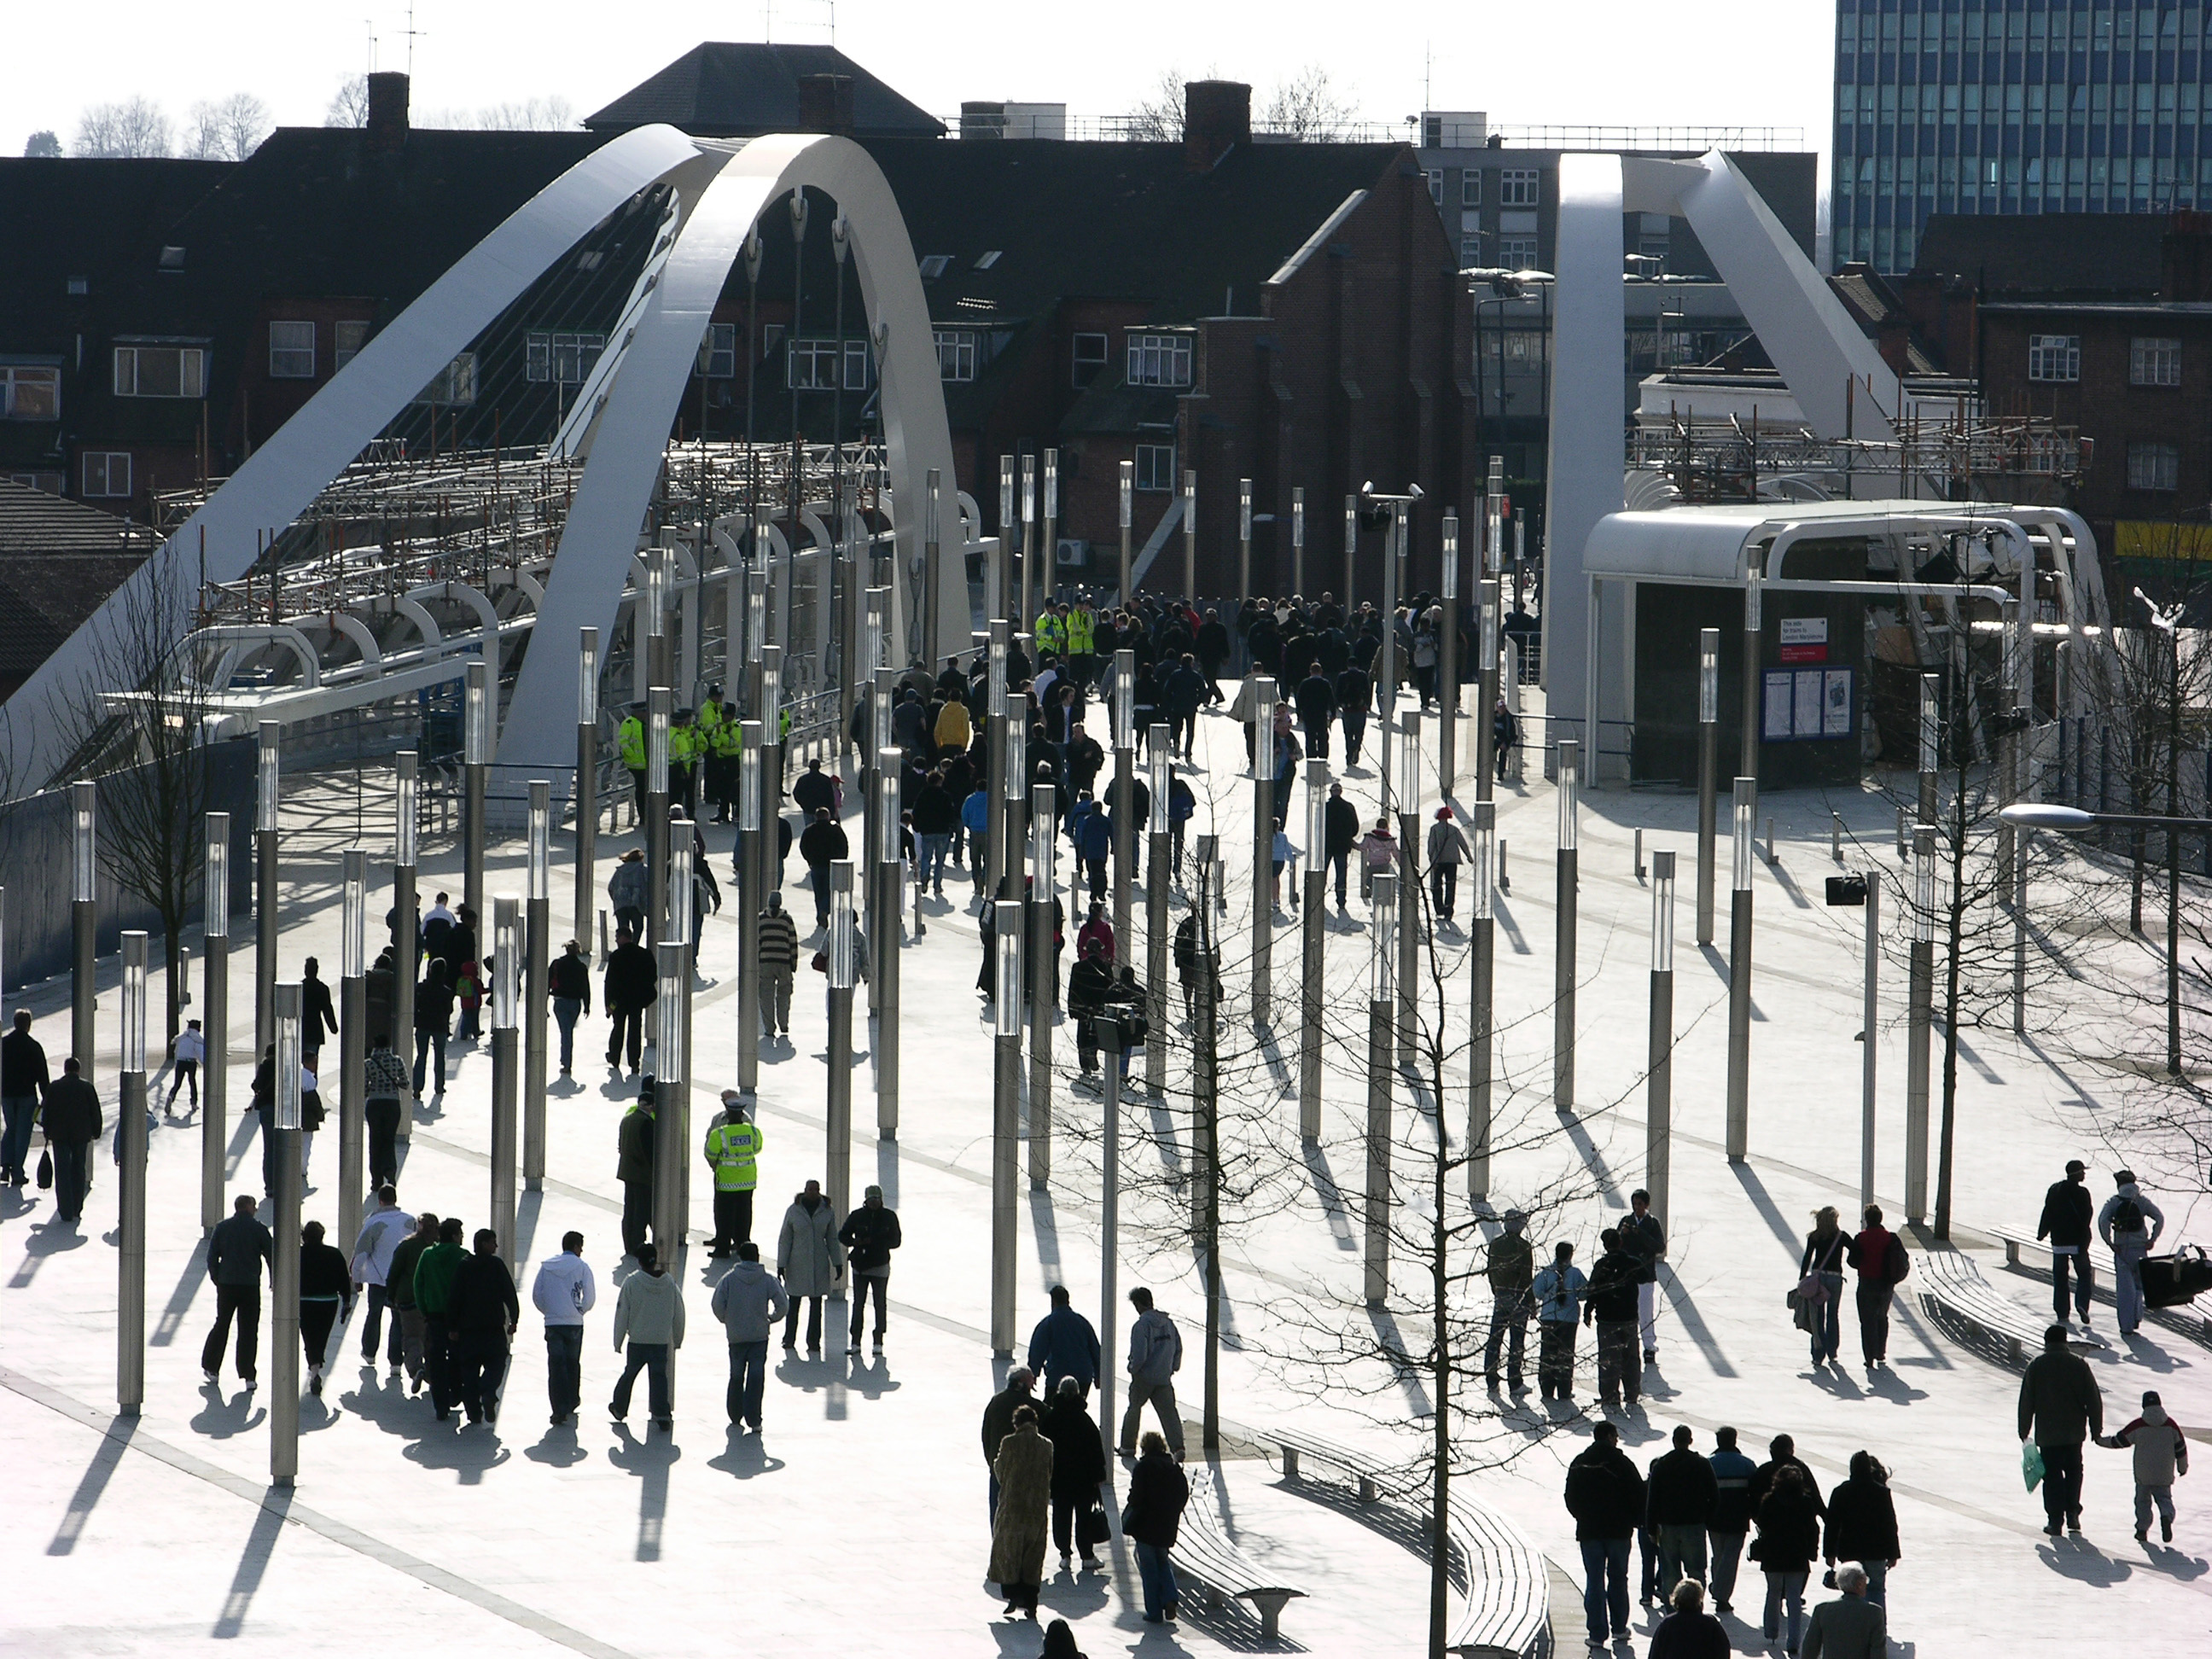 Wembley White Horse Bridge & Public Realm by Marks Barfield Architects